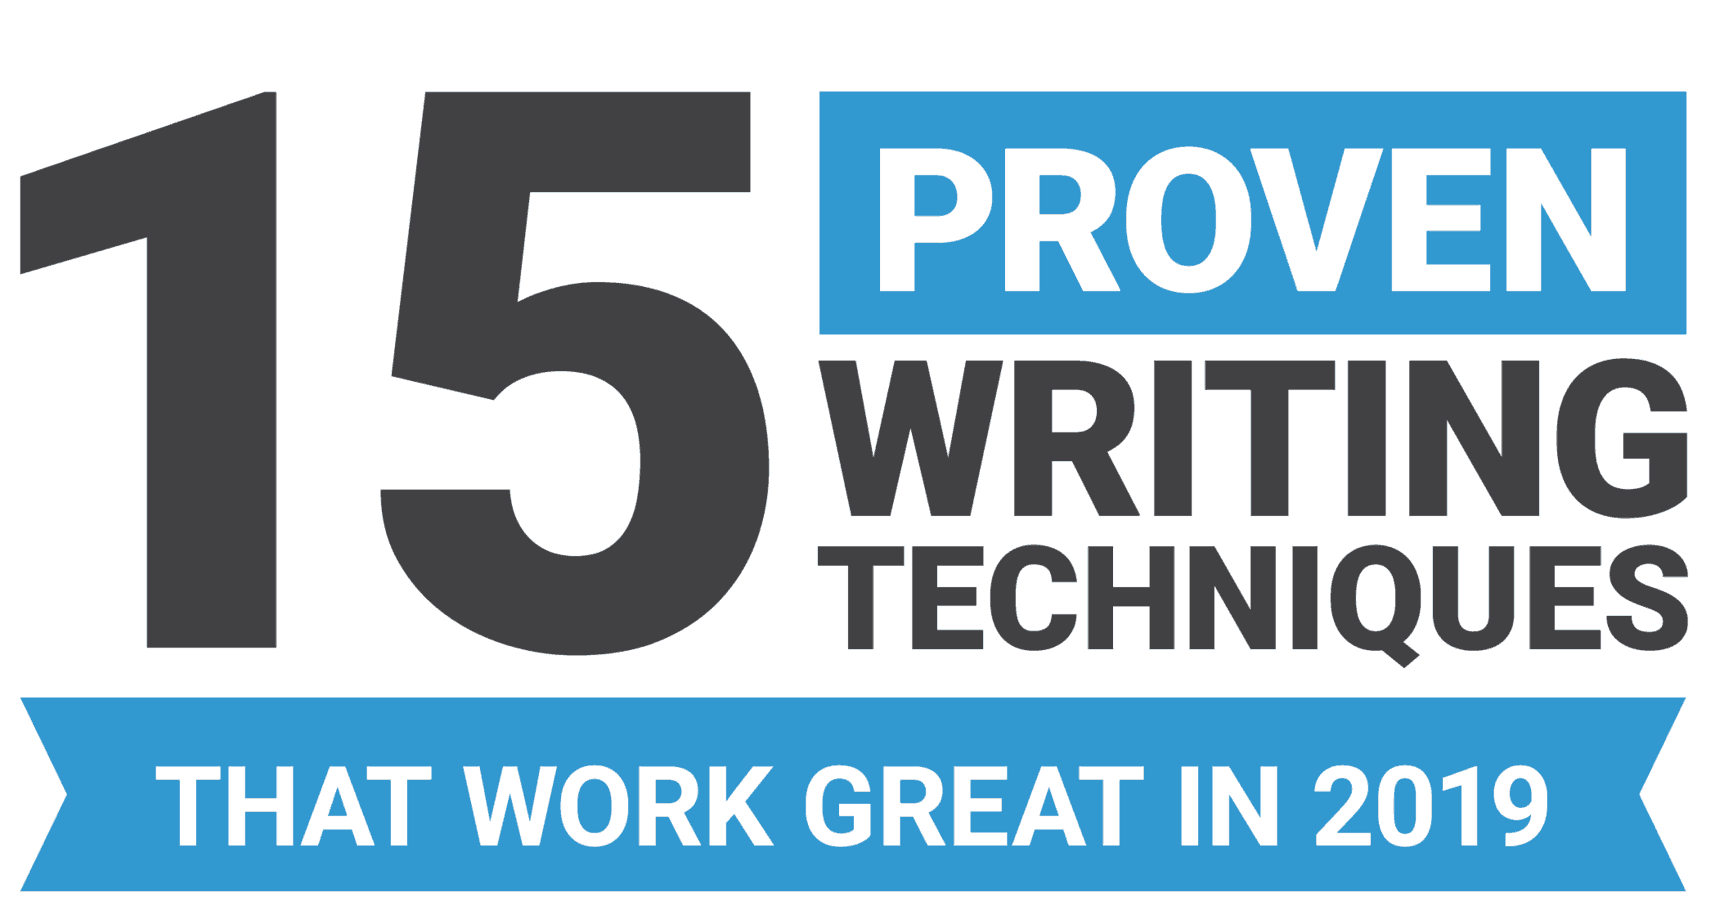 10 Proven Writing Techniques that Work GREAT in 2020